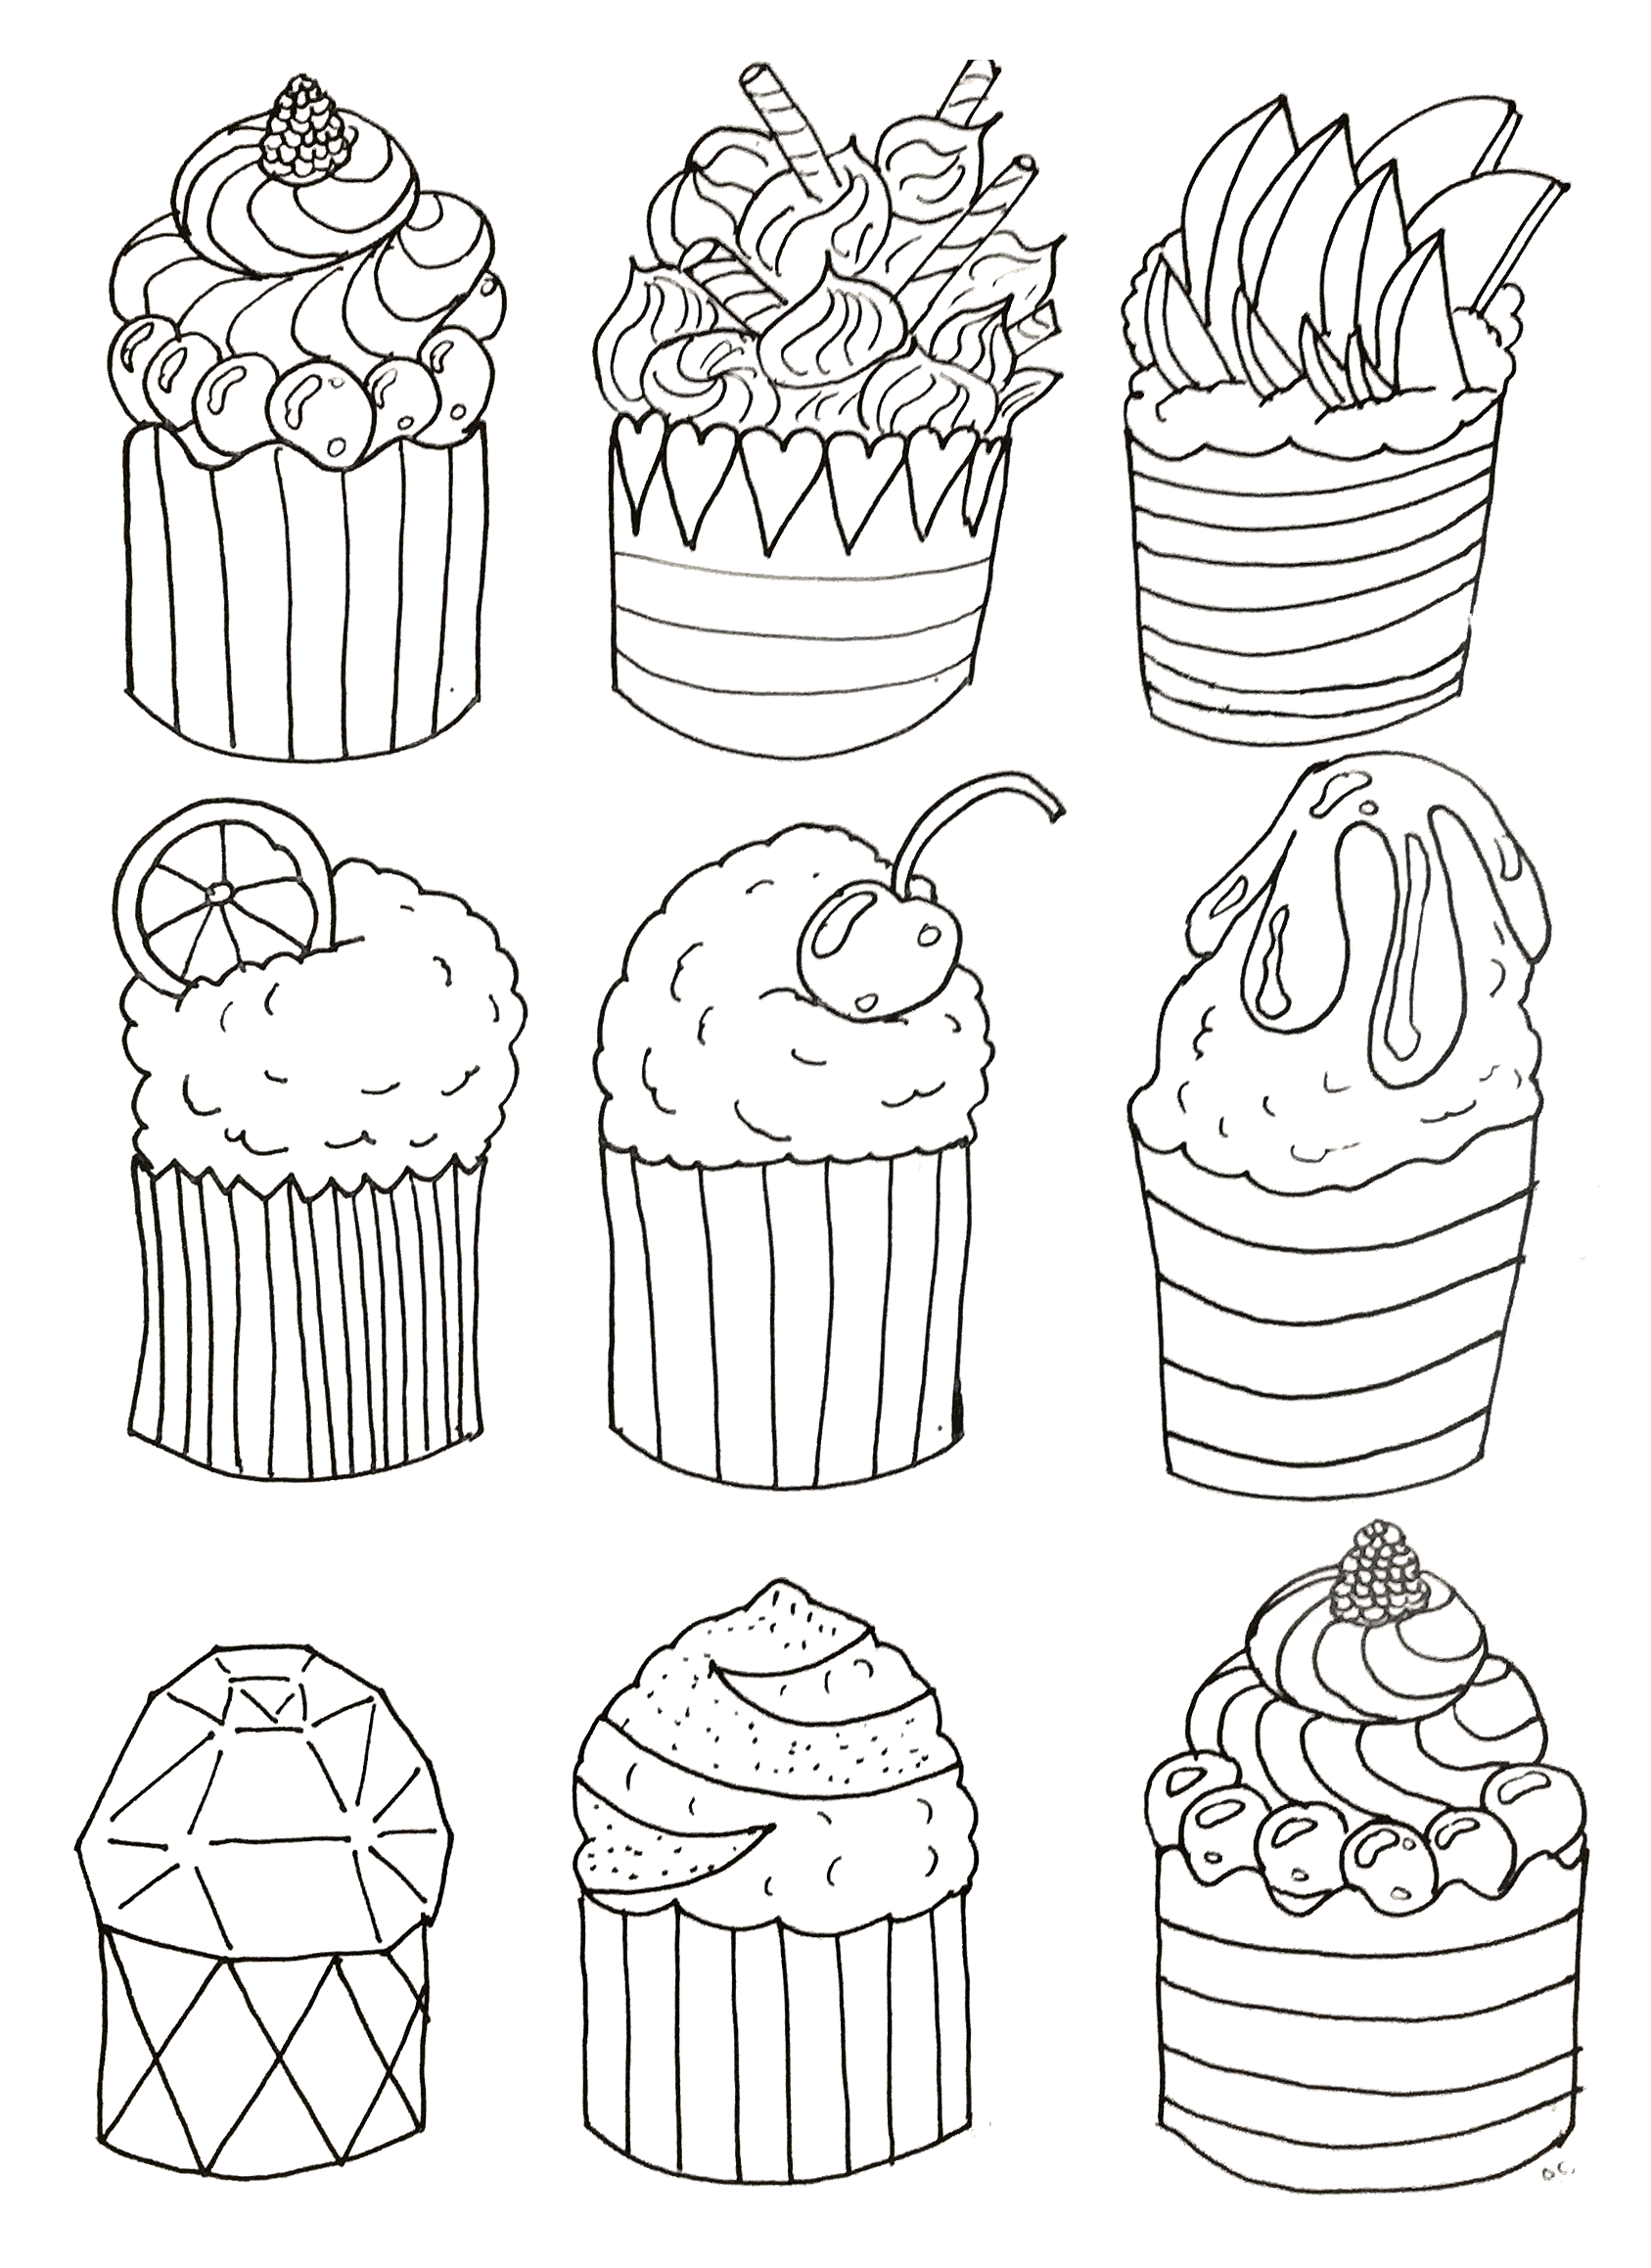 Simple Cupcakes Coloring Page Original Drawing To Print